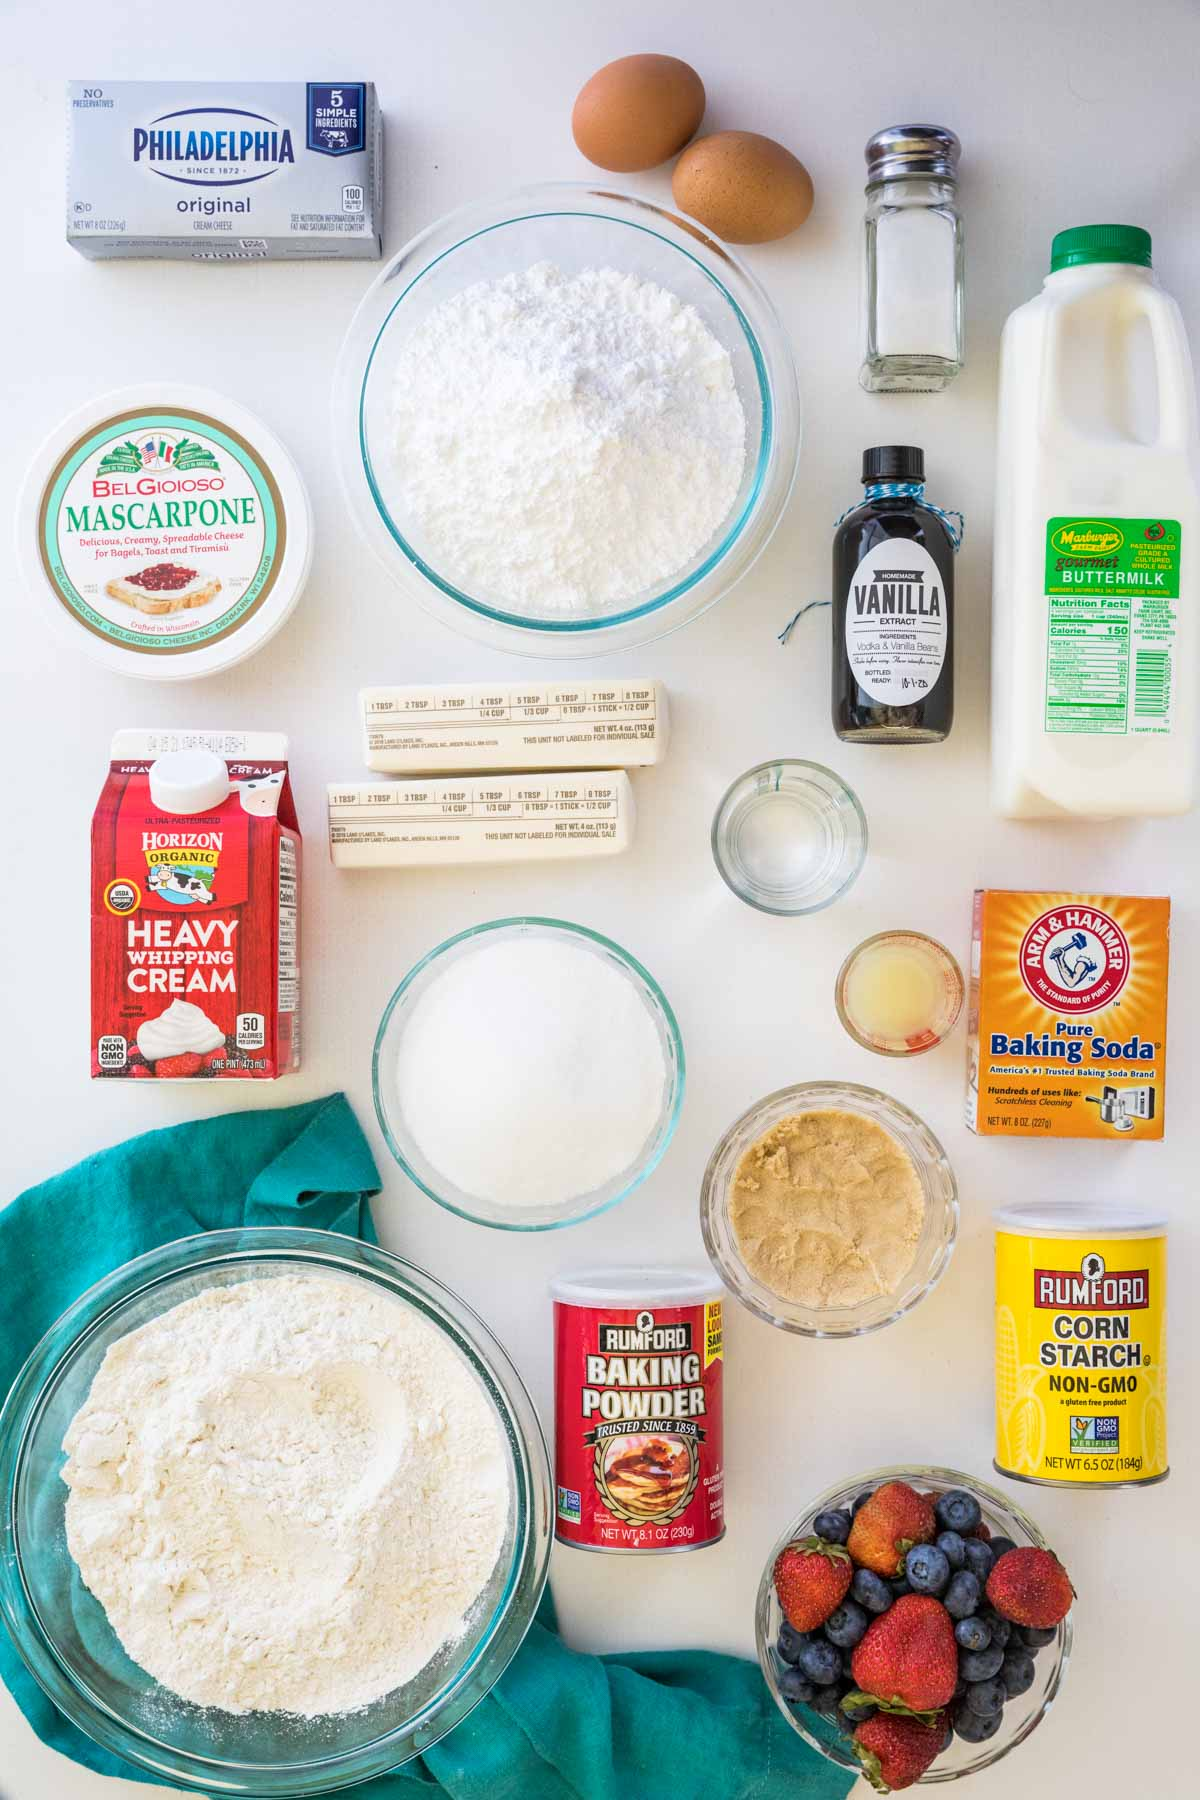 Ingredients for chantilly cake